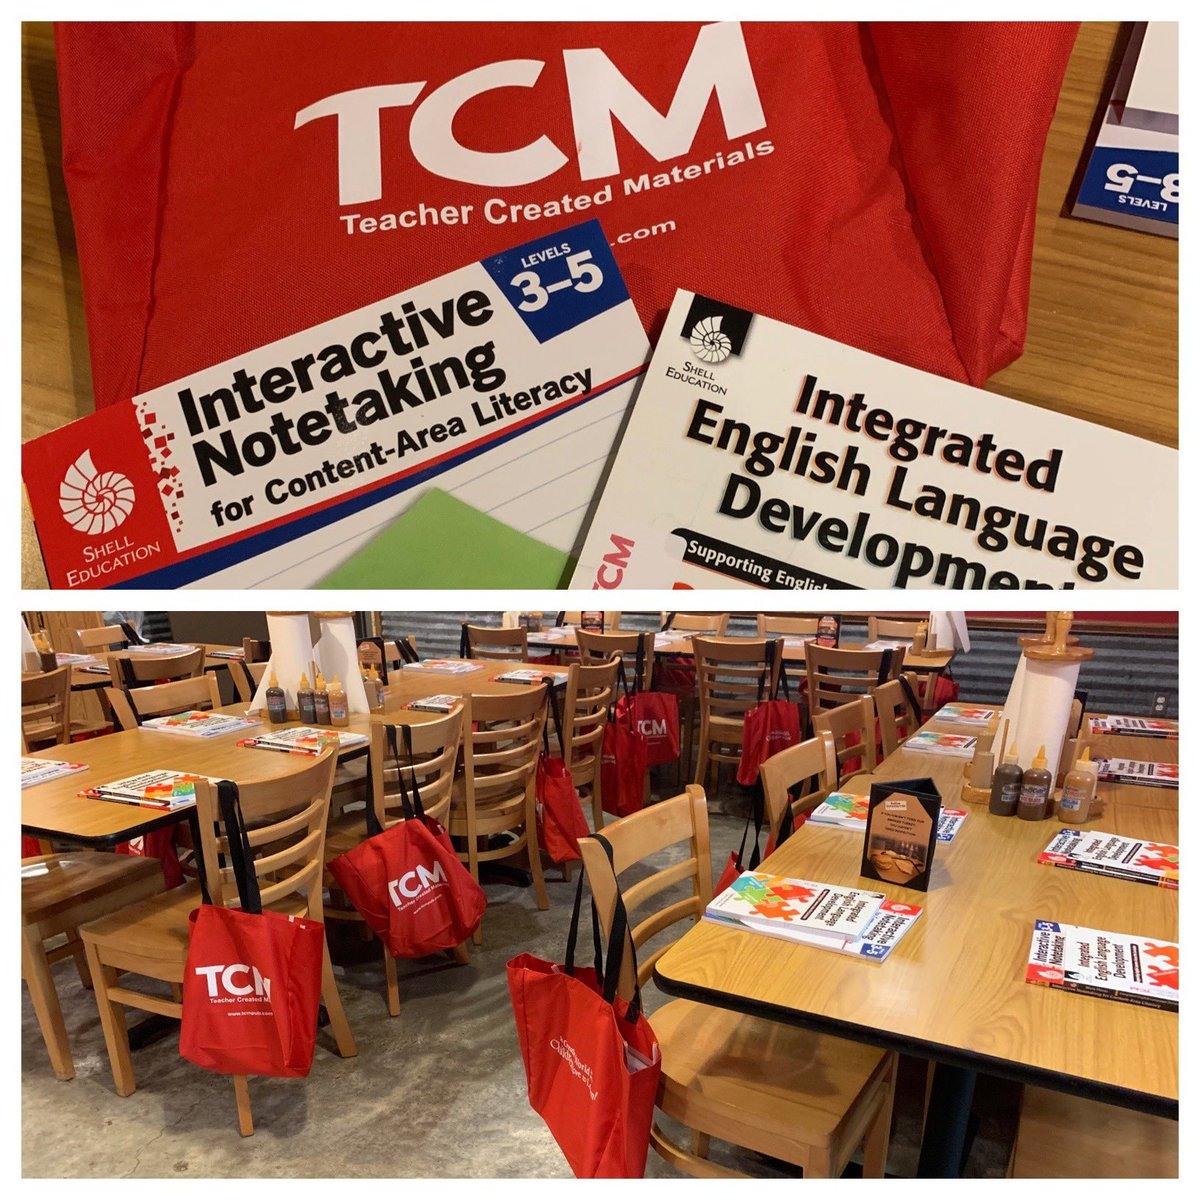 Stage is set for a great #LunchAndLearn meeting in #SouthTexas #RGV with #edleaders They are in for some yummy #barbecue and #professionaldevelopment books! #mytcm <br>http://pic.twitter.com/430b4RlgWG